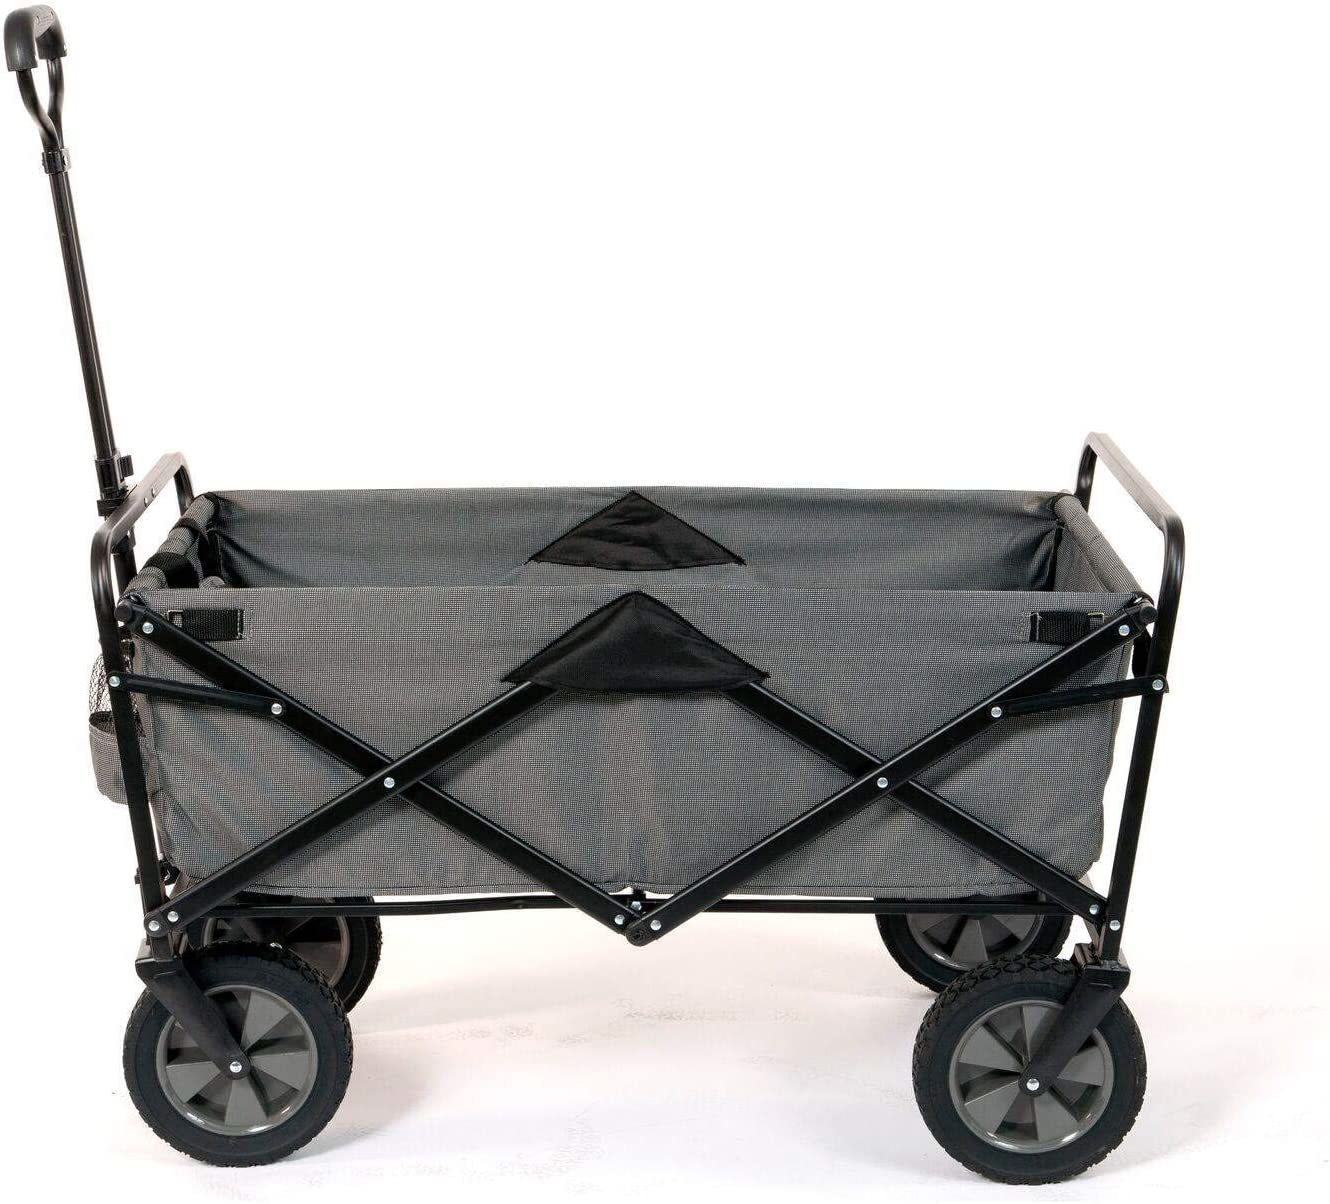 Mac Sports Collapsible Steel Frame Sale item Camping Gifts Wagon Outdoor Garden